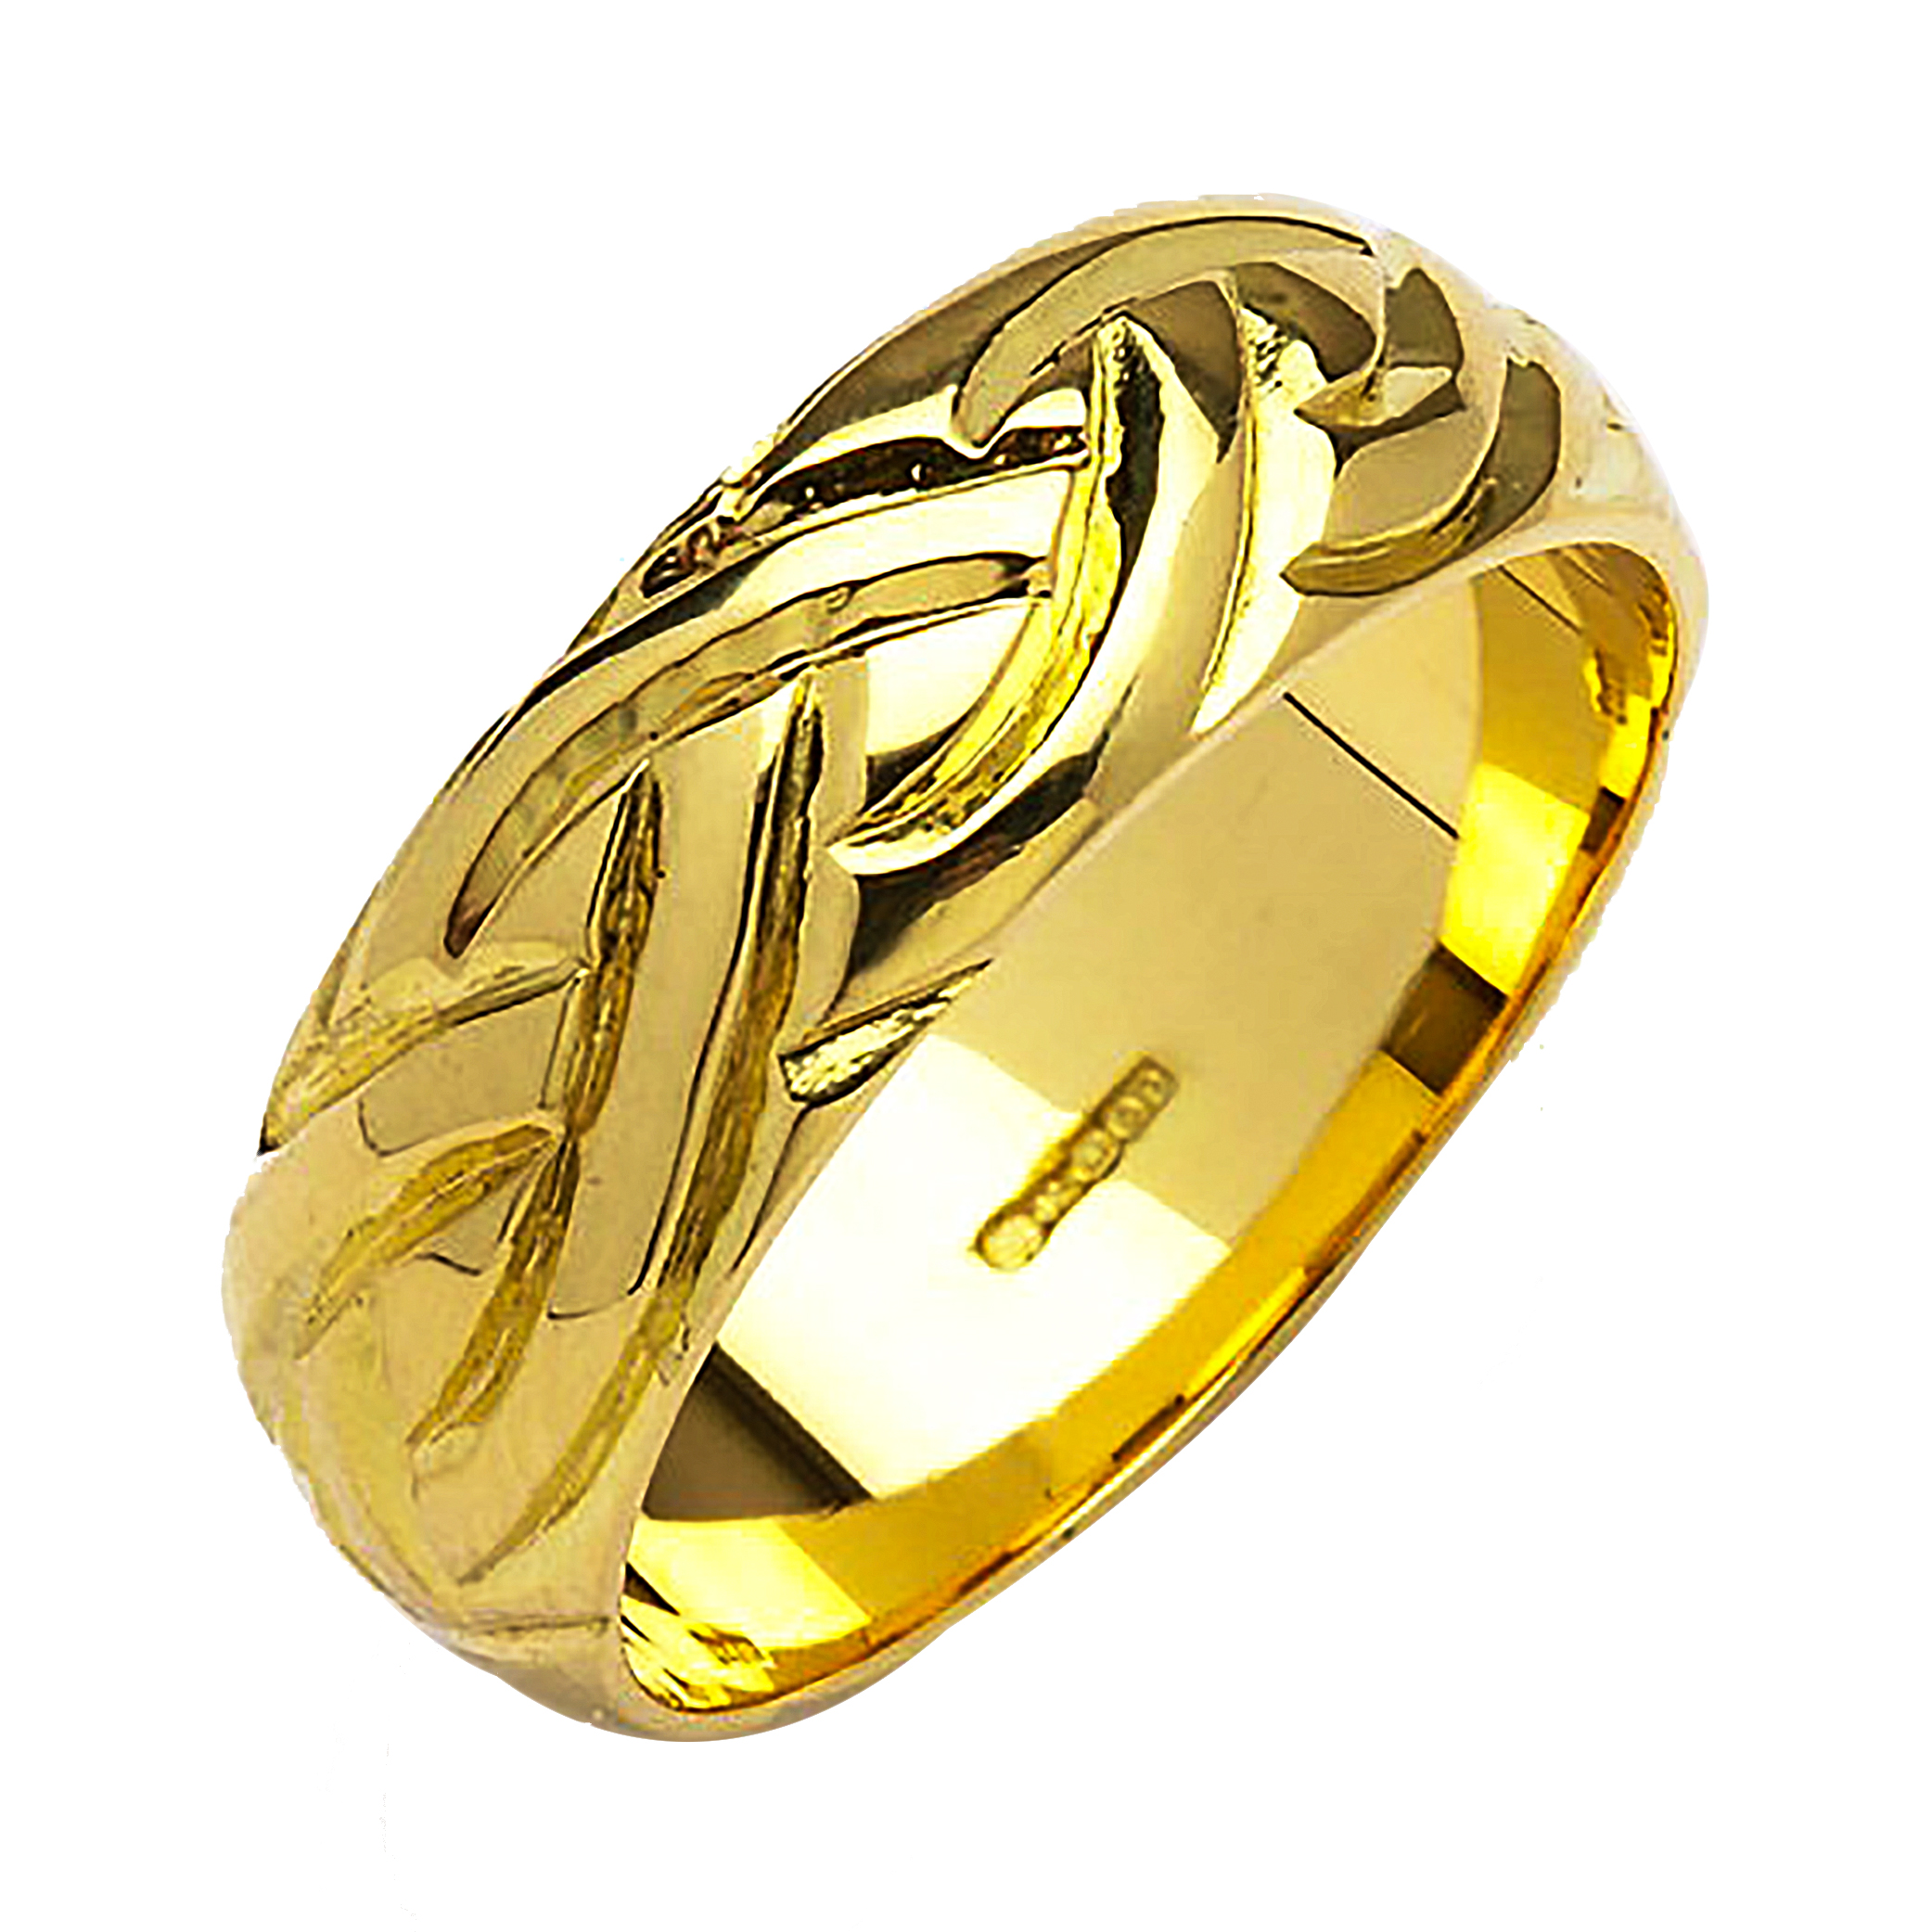 jewelry bands s yellow gold ladie wedding classic sarkisians ring ladies mm product band